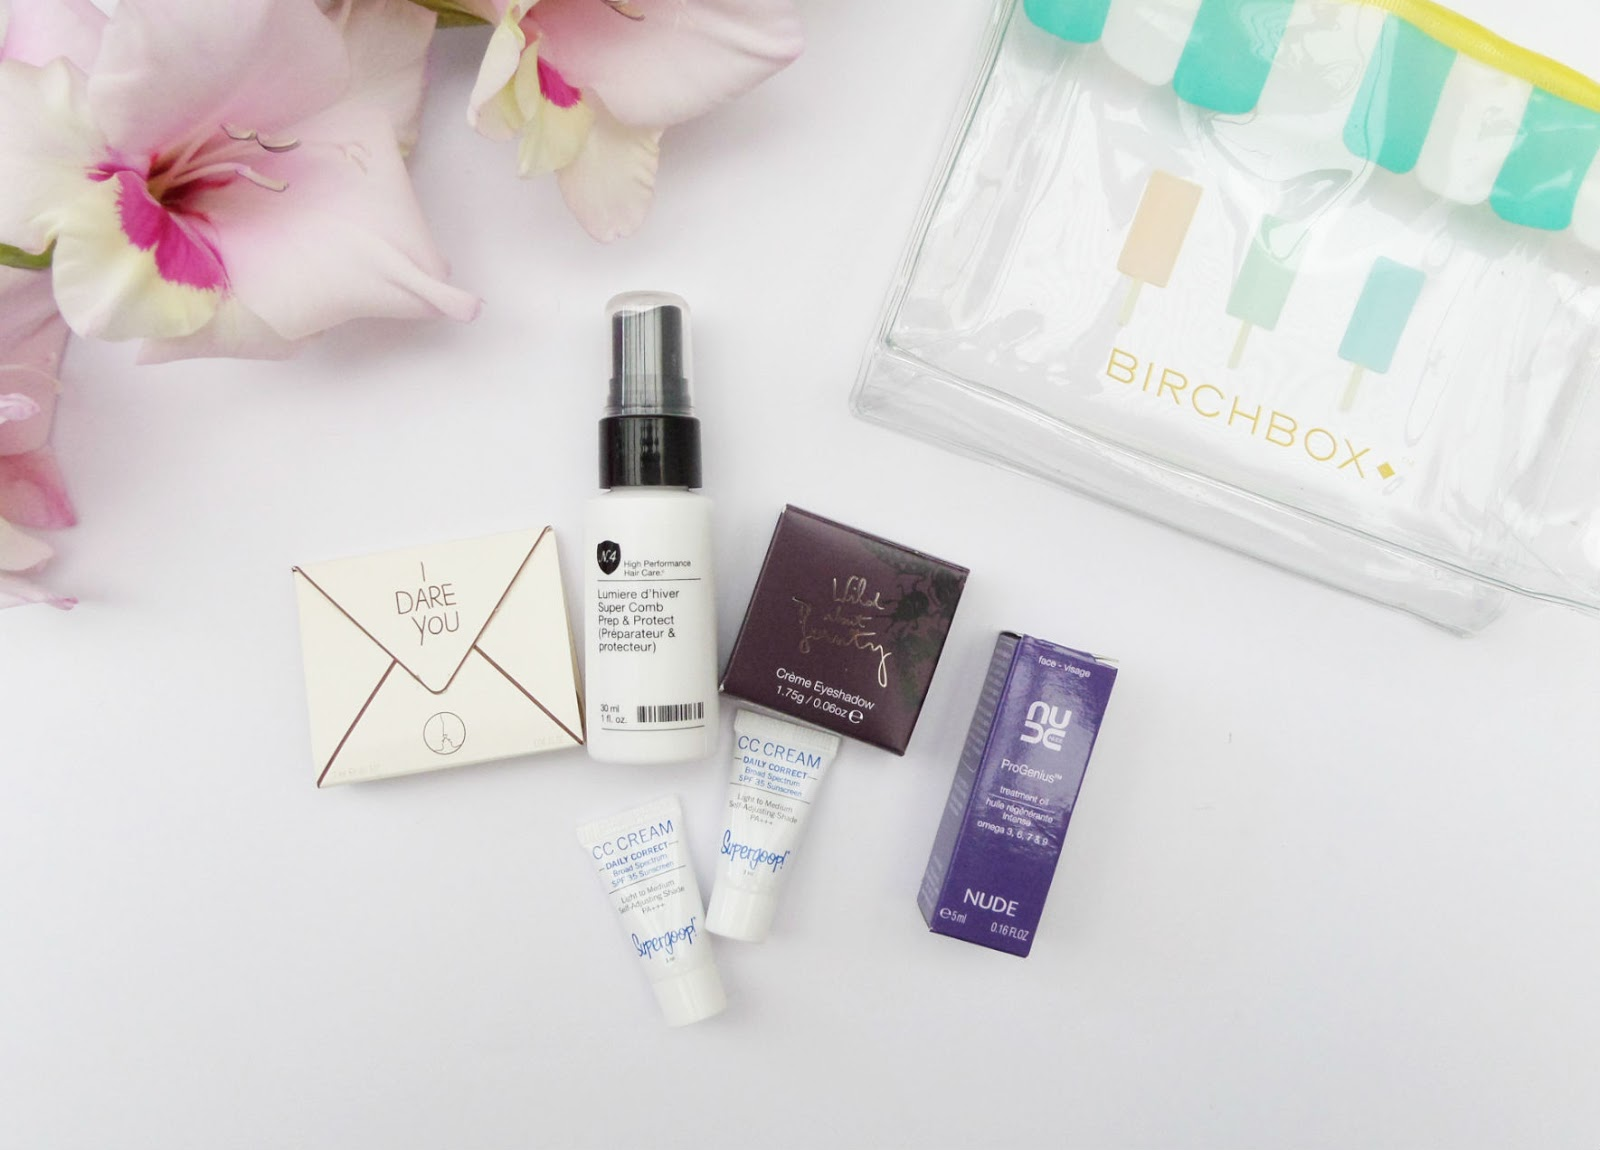 Birchbox | Inside the August 2014 Box